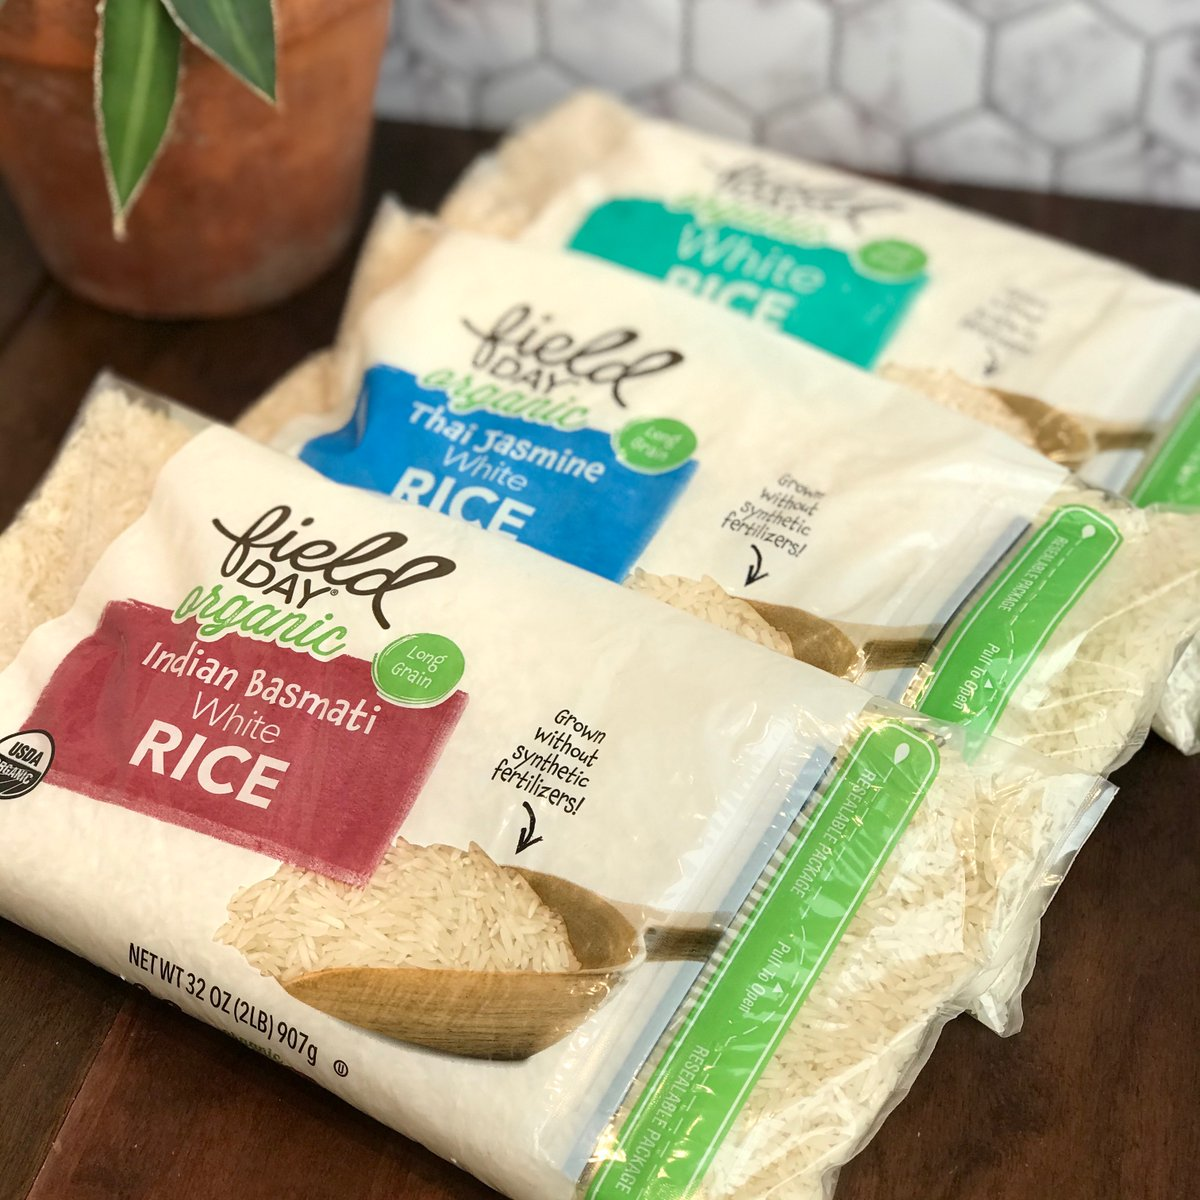 Field Day Products high-quality, value-priced items continue to grace our shelves. New to the line-up, White, Thai Jasmine, and Indian Basmati organic rice.  Enjoy! #oneotacoop #foodcoop #decorah #fieldday #organic #rice https://t.co/qwklwVx0RW